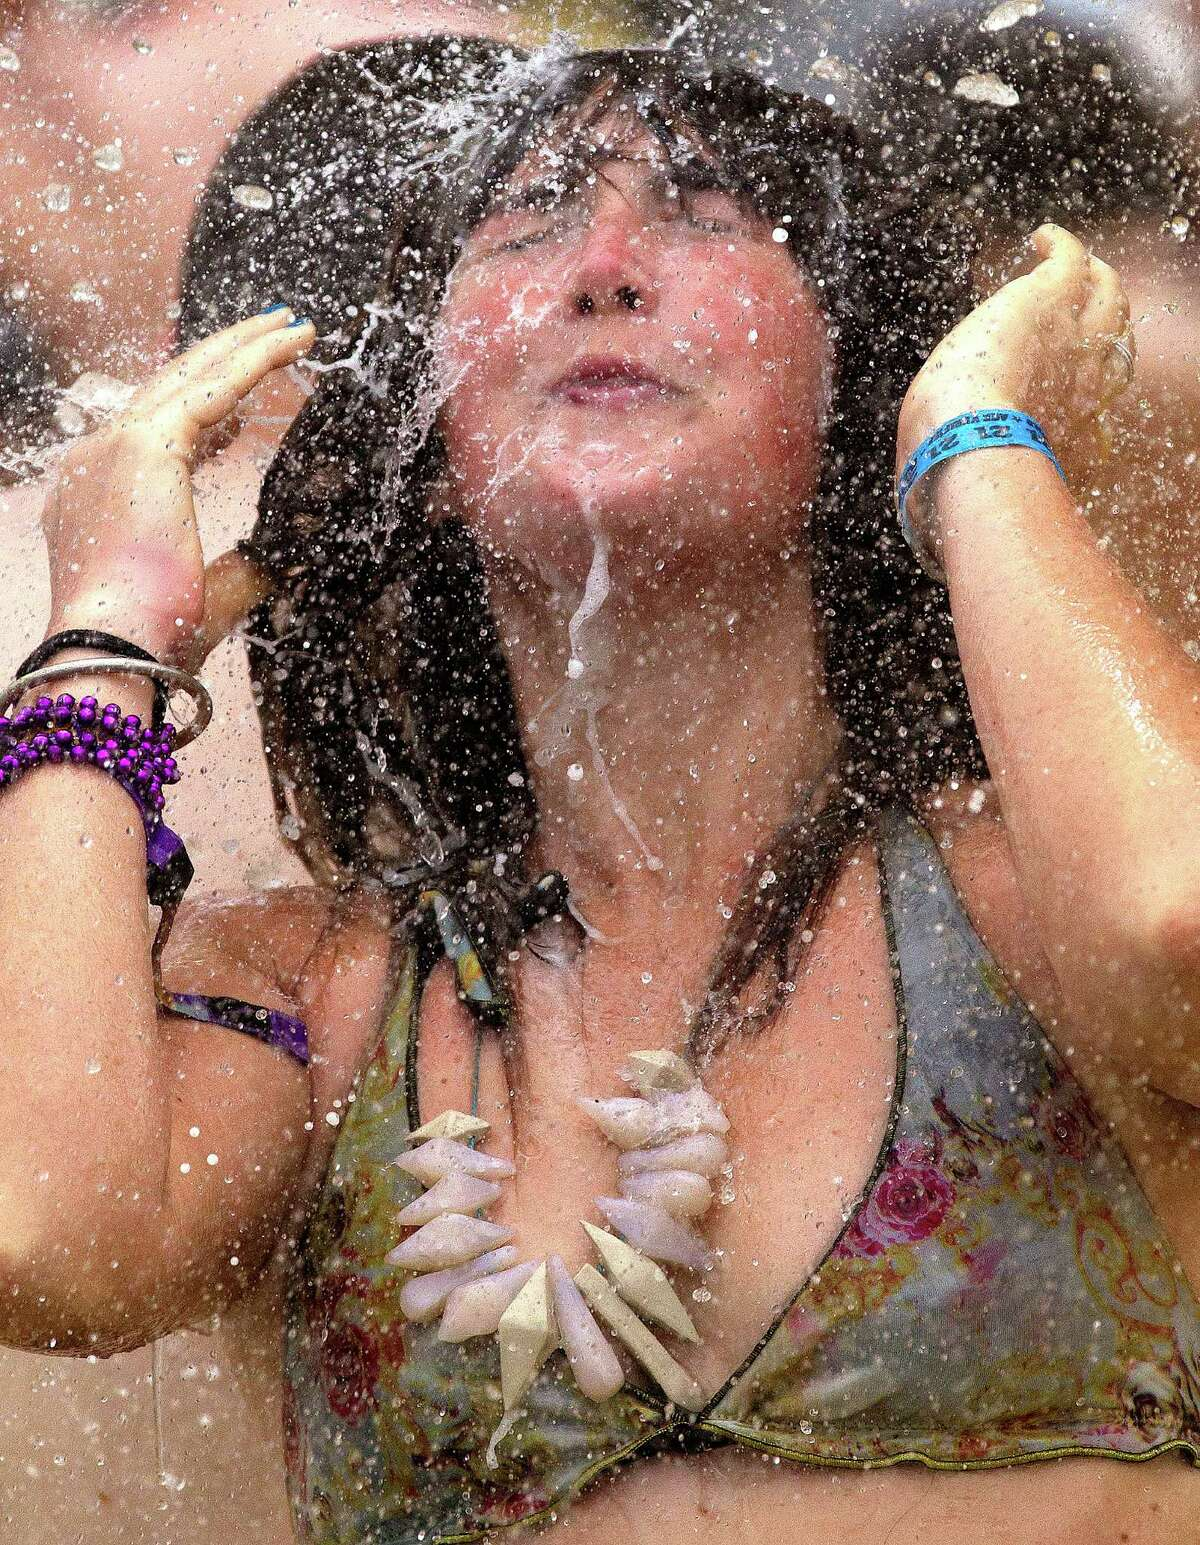 Lex Hirst, of Sydney,cools off in the Centeroo Fountain during the Bonnaroo Music and Arts Festival in Manchester, Tenn., Saturday, June 9, 2012.